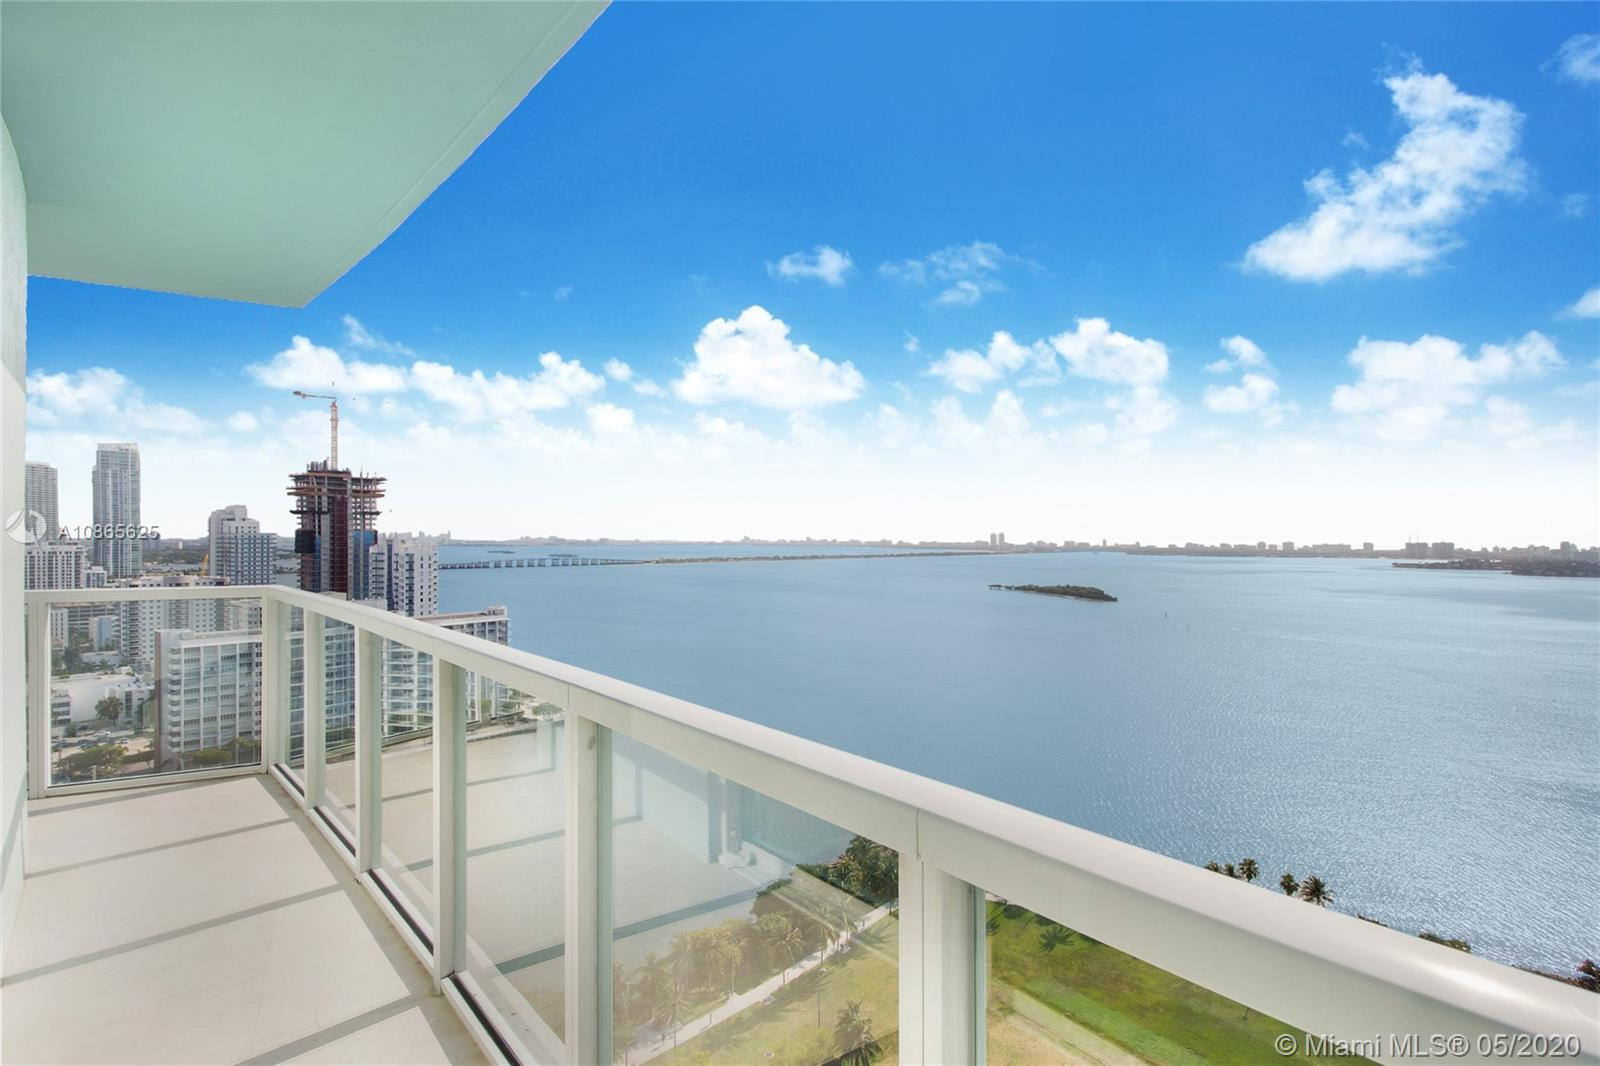 Spacious 2 bedroom + Den with 2 full bathrooms and an extra powder room in the desirable Quantum On The Bay. Quarts kitchen counters, European cabinets, stainless steel appliances. Wraparound balcony with stunning views of the Biscayne Bay, Margaret Pace Park and the Beaches. Two pools, fitness center, lounge, movie theater, business center in the building. Unit can be rented furnished at extra cost. No pets as per building policy.